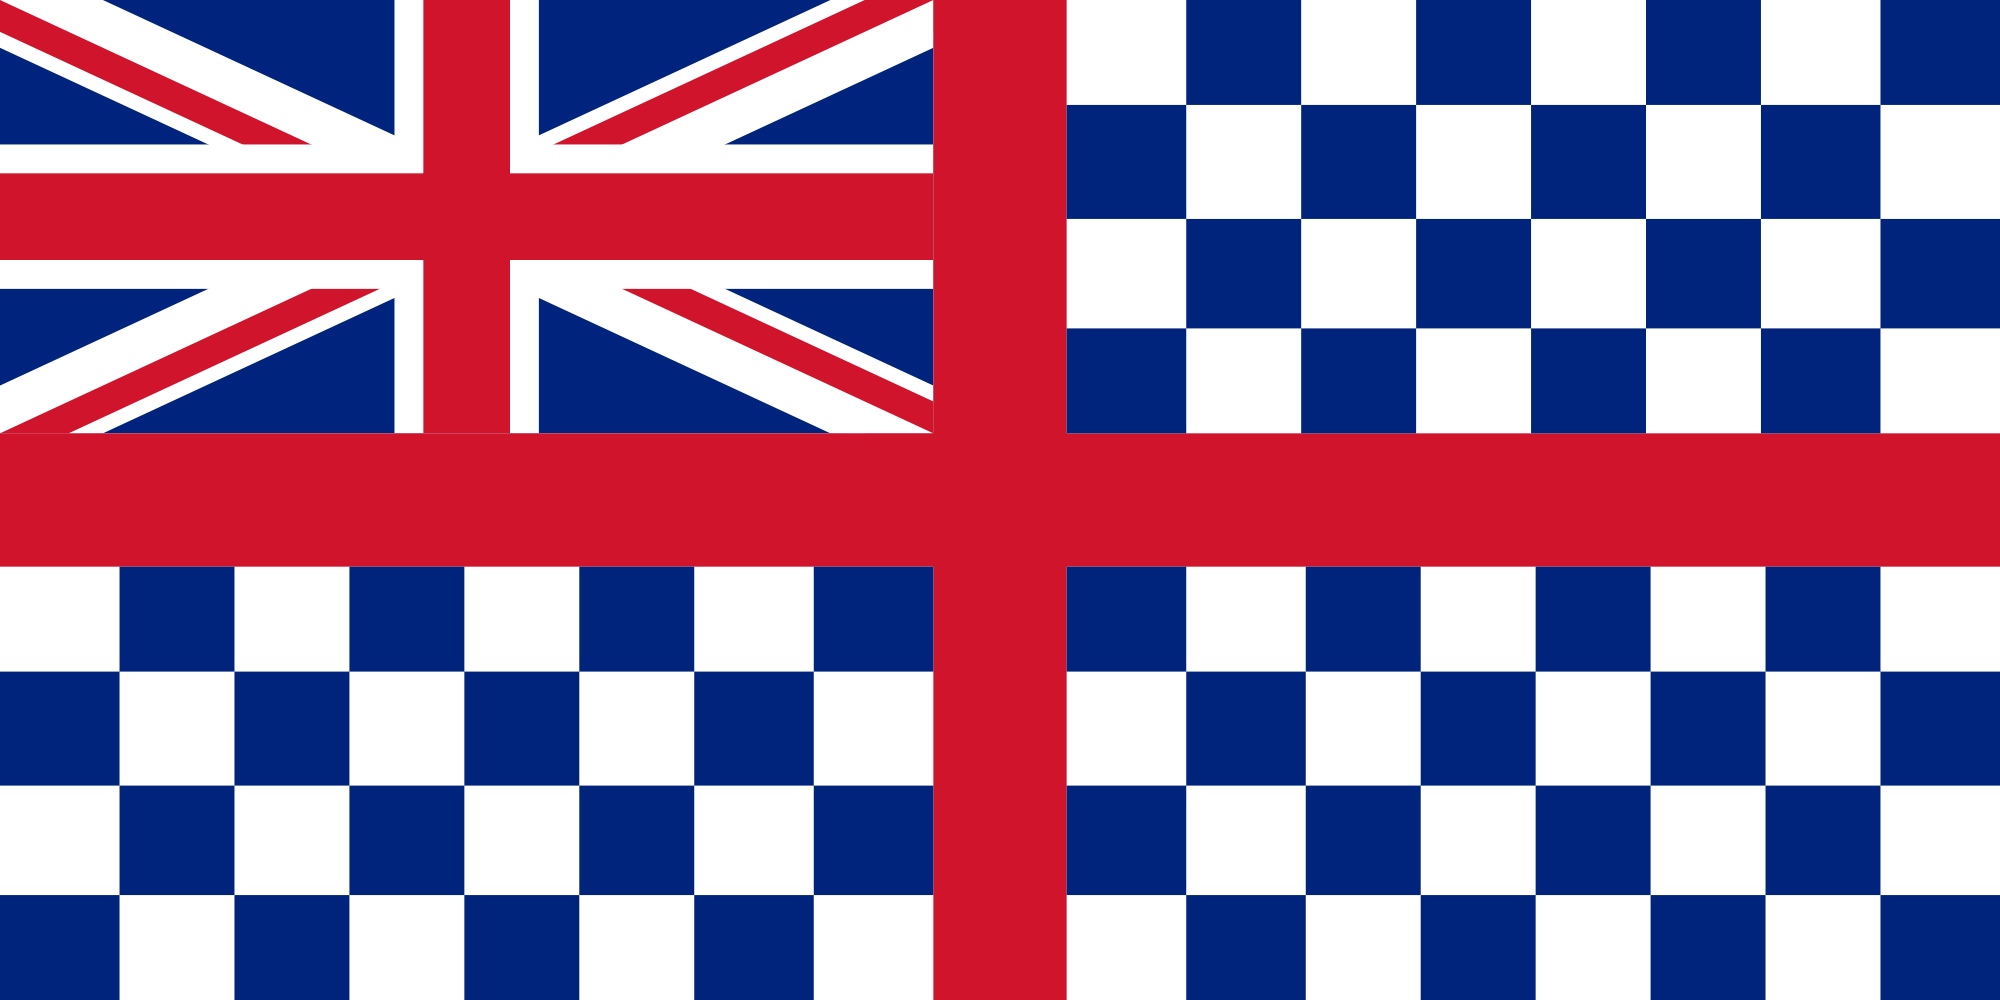 19th century Guernsey flag